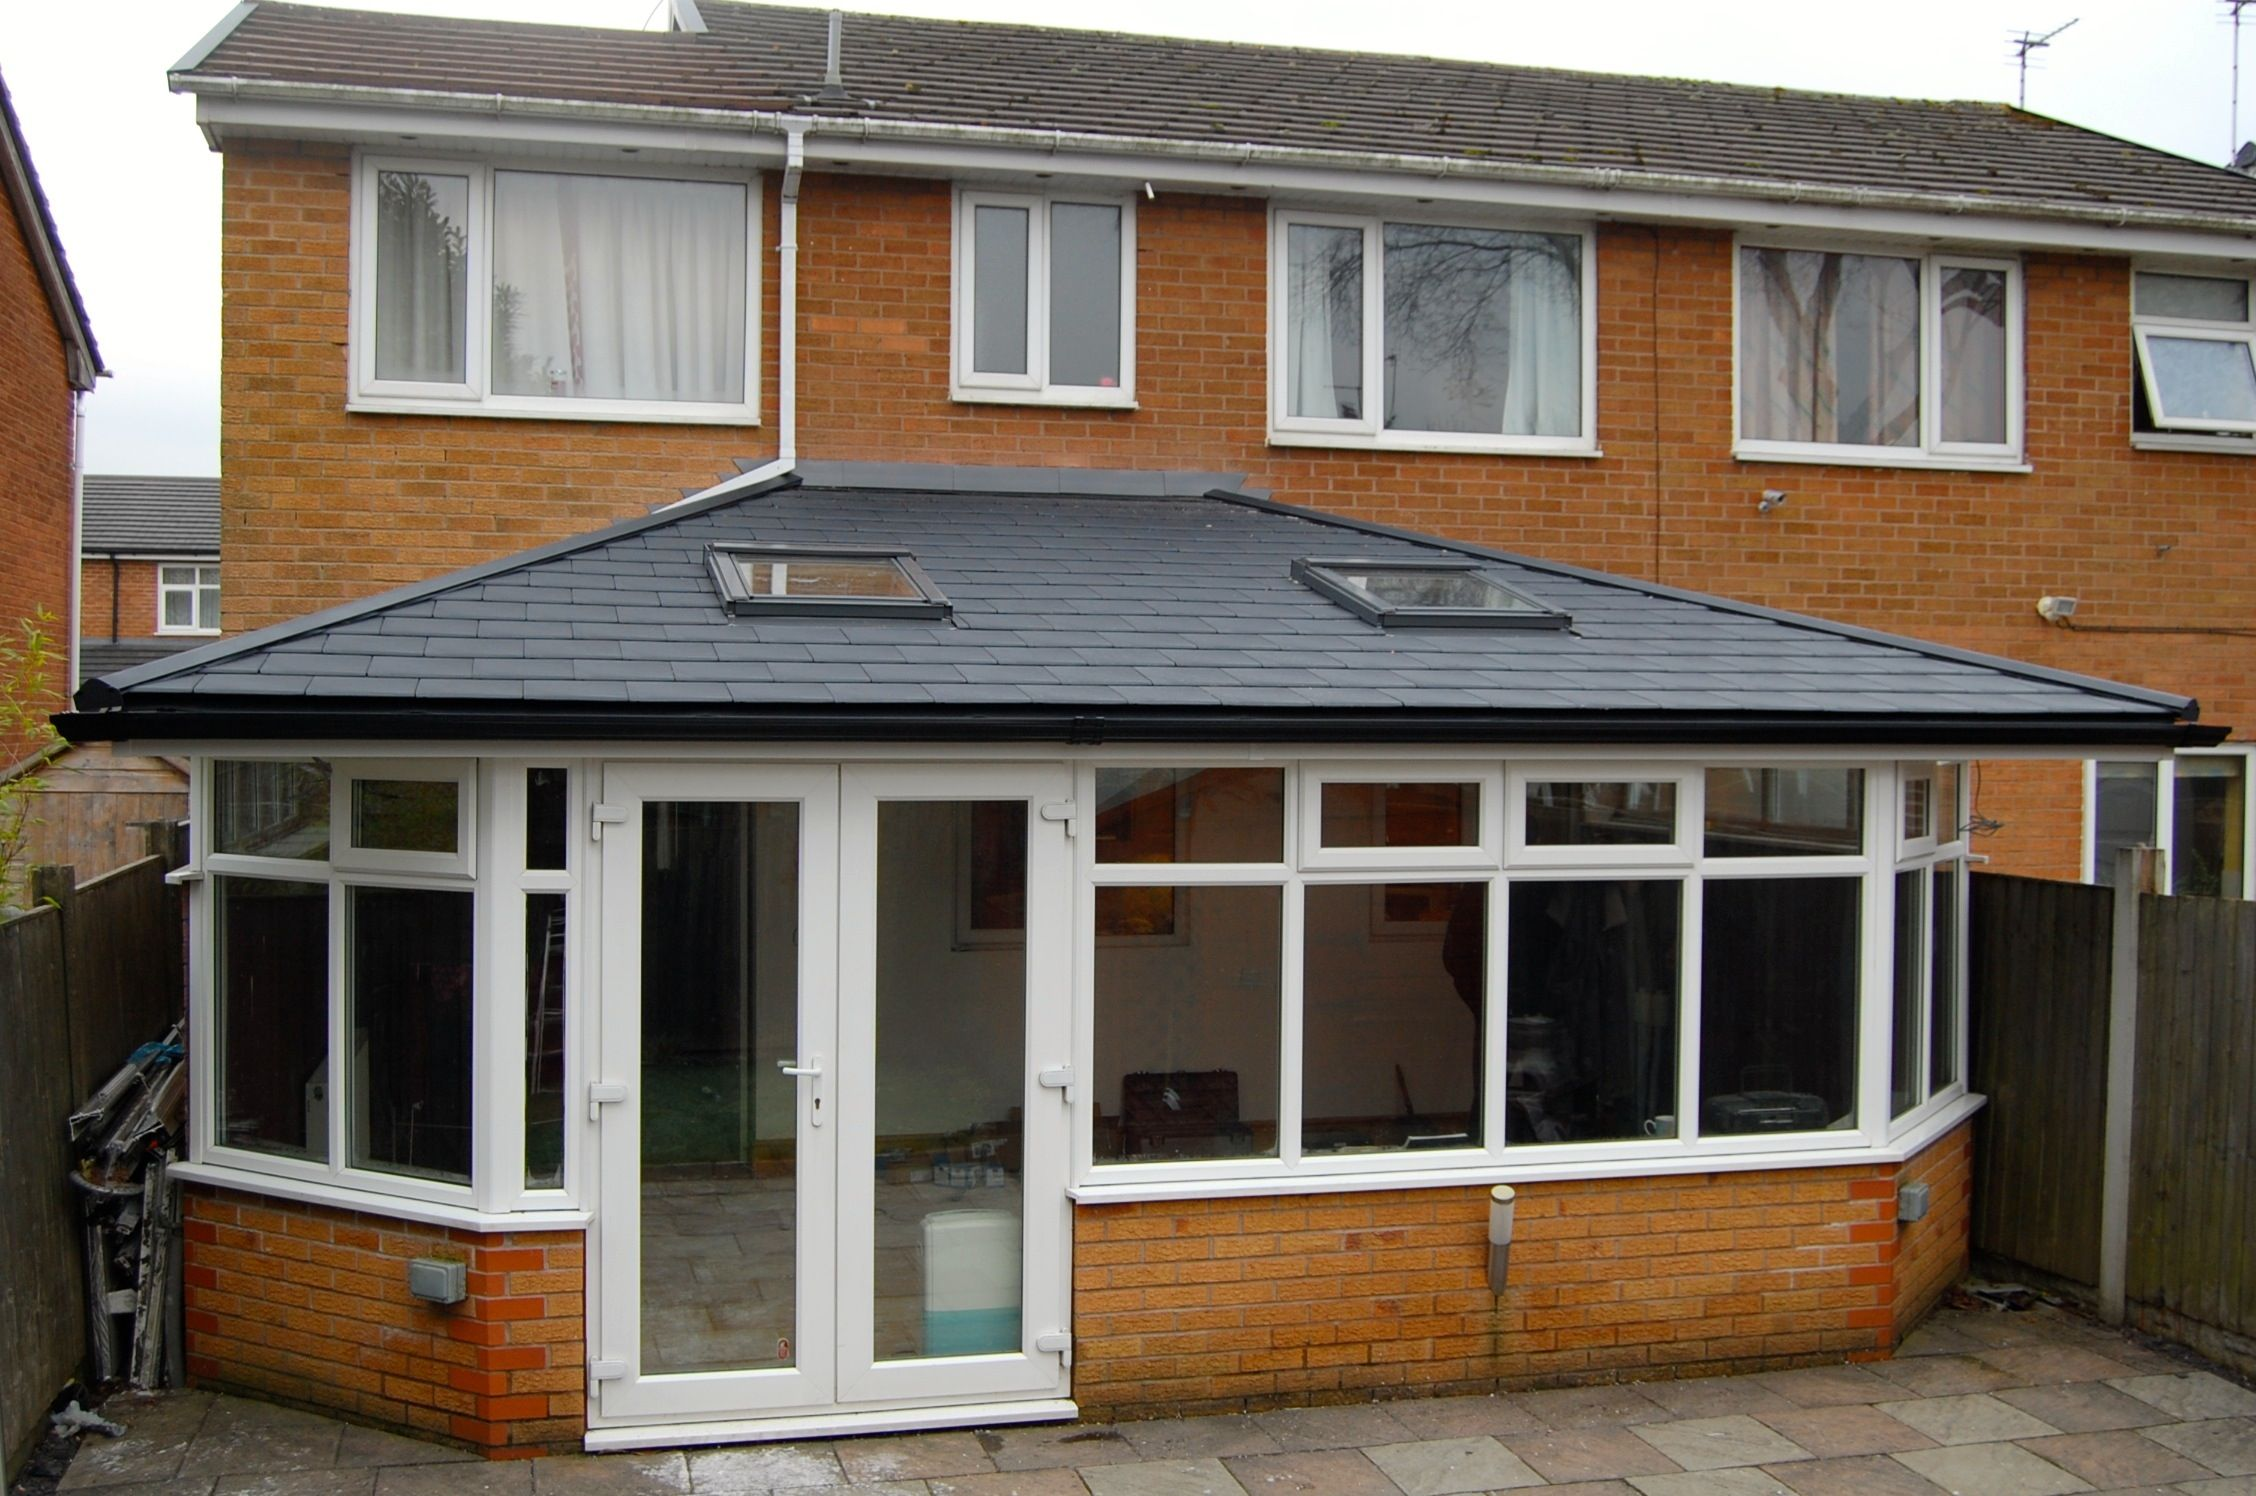 This Conservatory Had An Aged Polycarbonate Roof Which Made The Room Cold In The Winter We Transformed The Garden Room Extensions Conservatory Roof Warm Roof